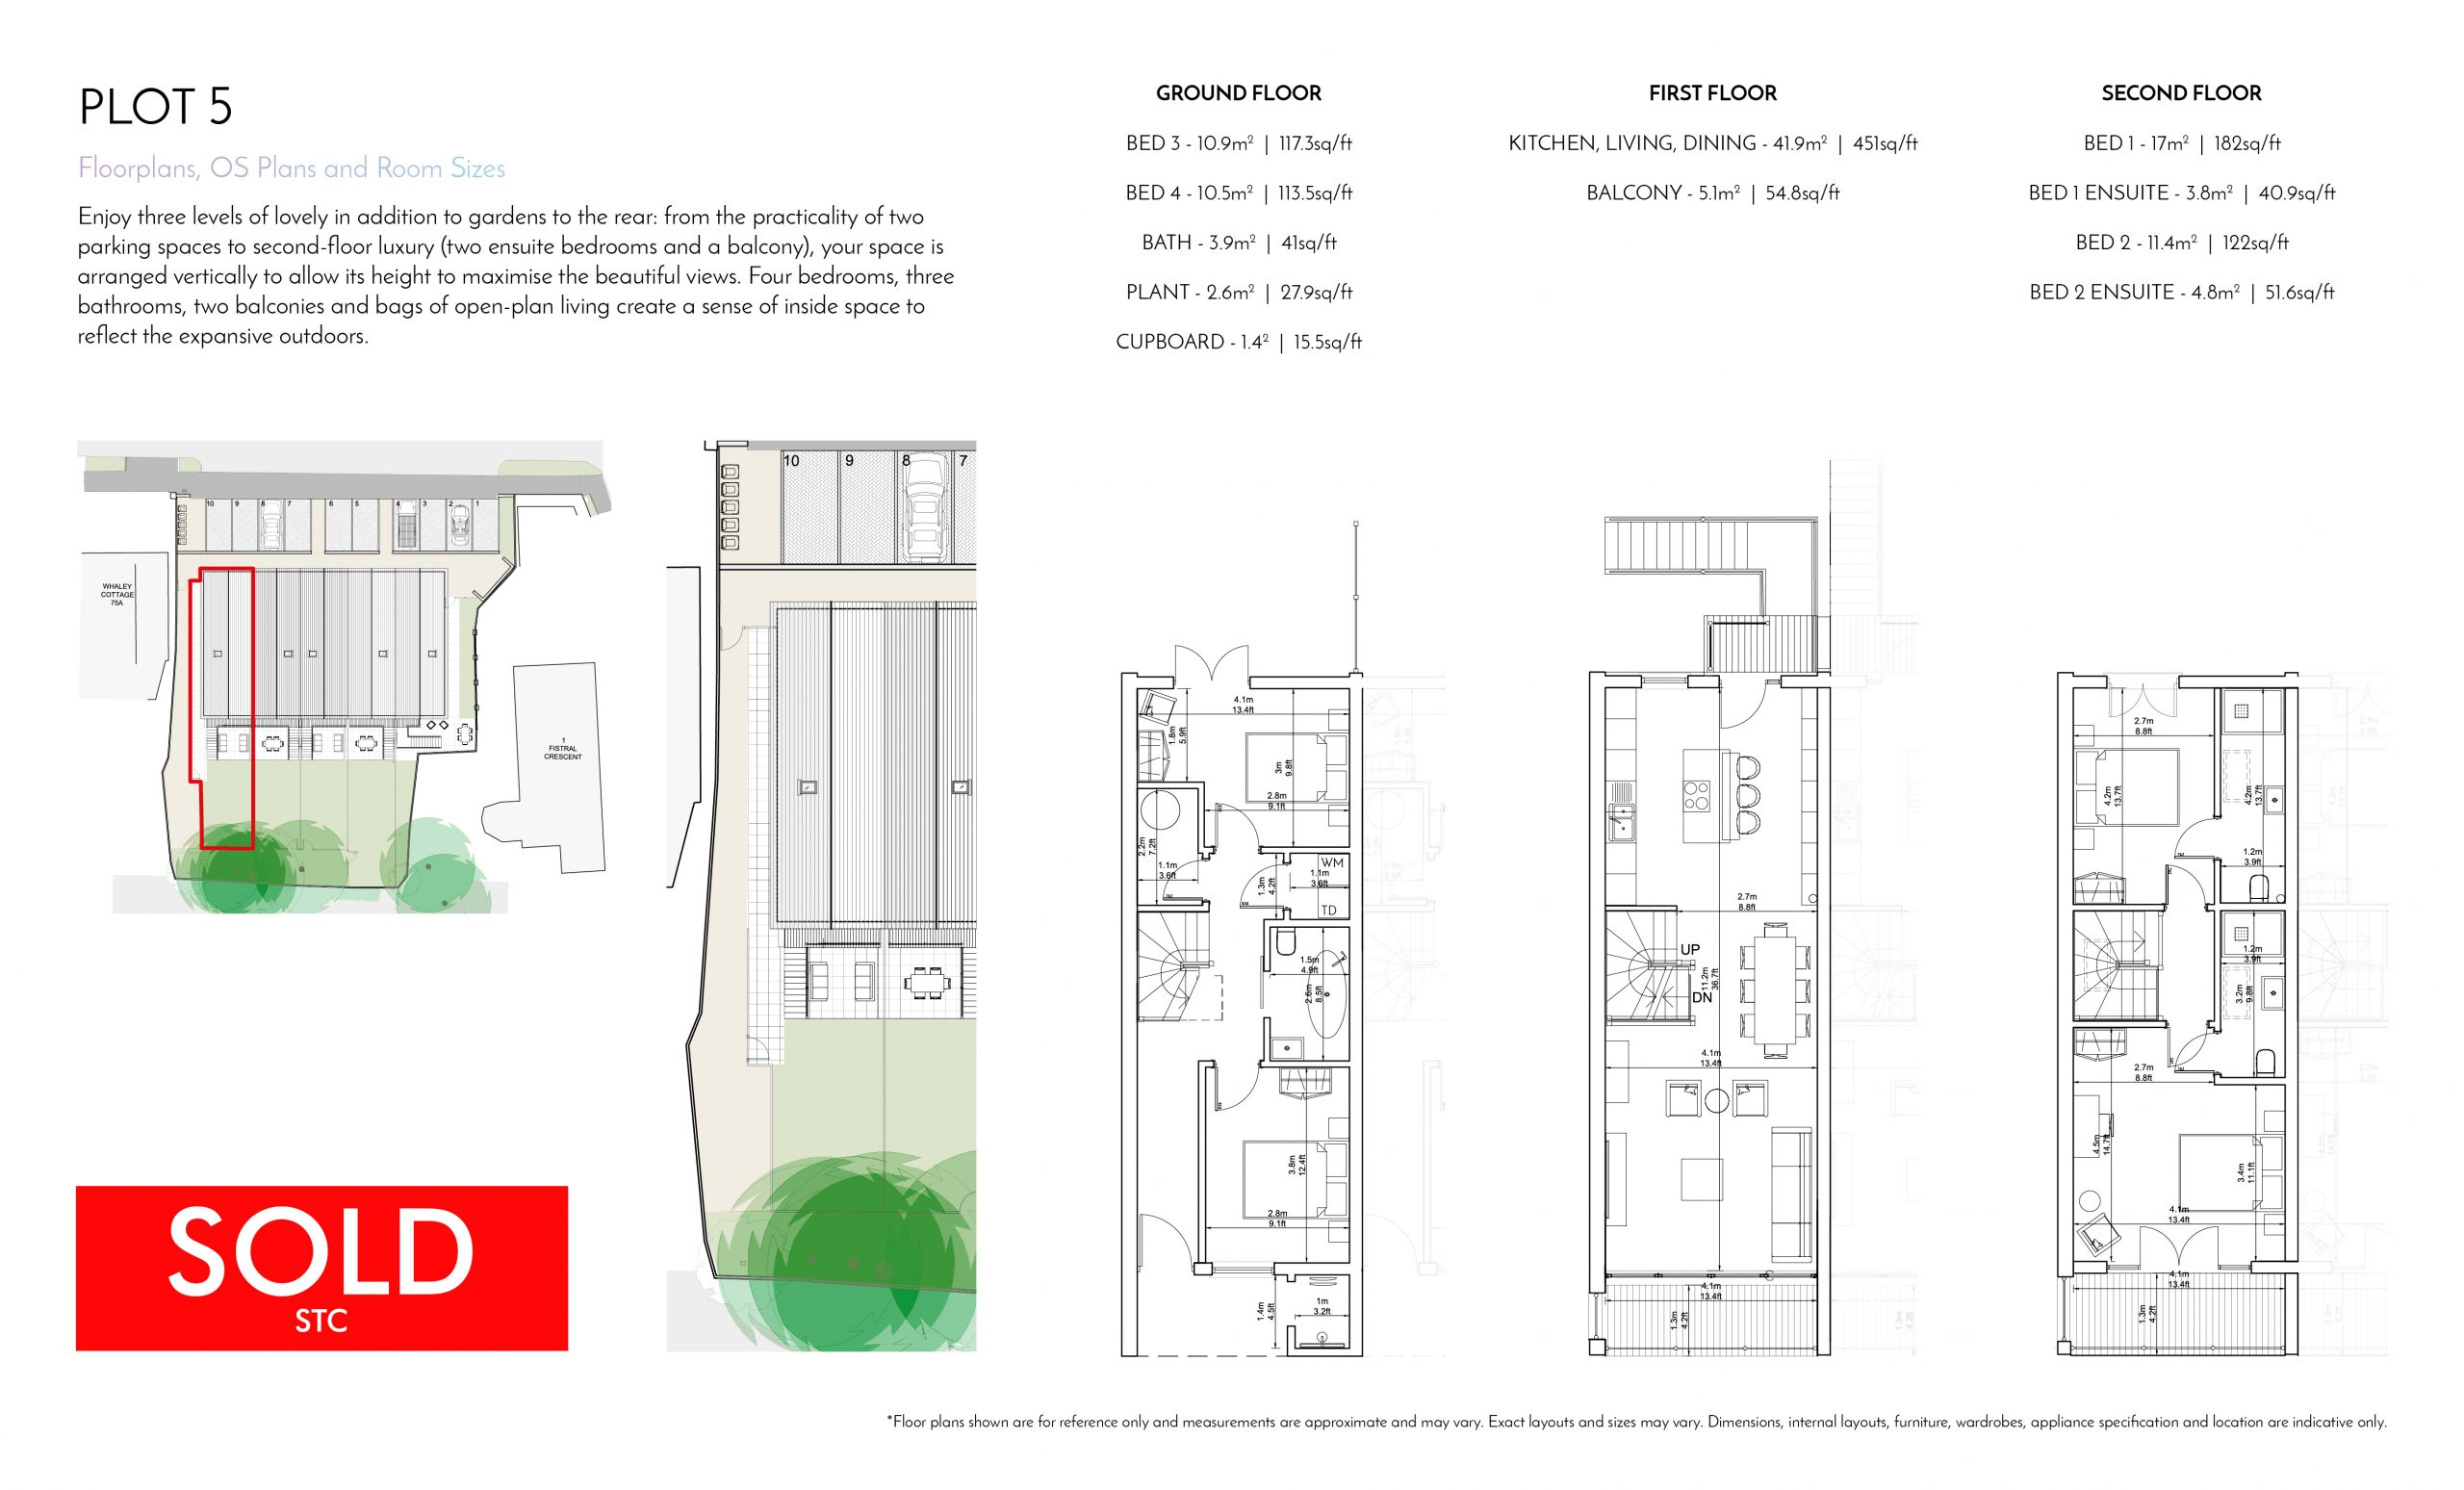 Stephens and Stephens Developers Breakwater Pentire Newquay Cornwall Floorplans Plot 5 SOLD